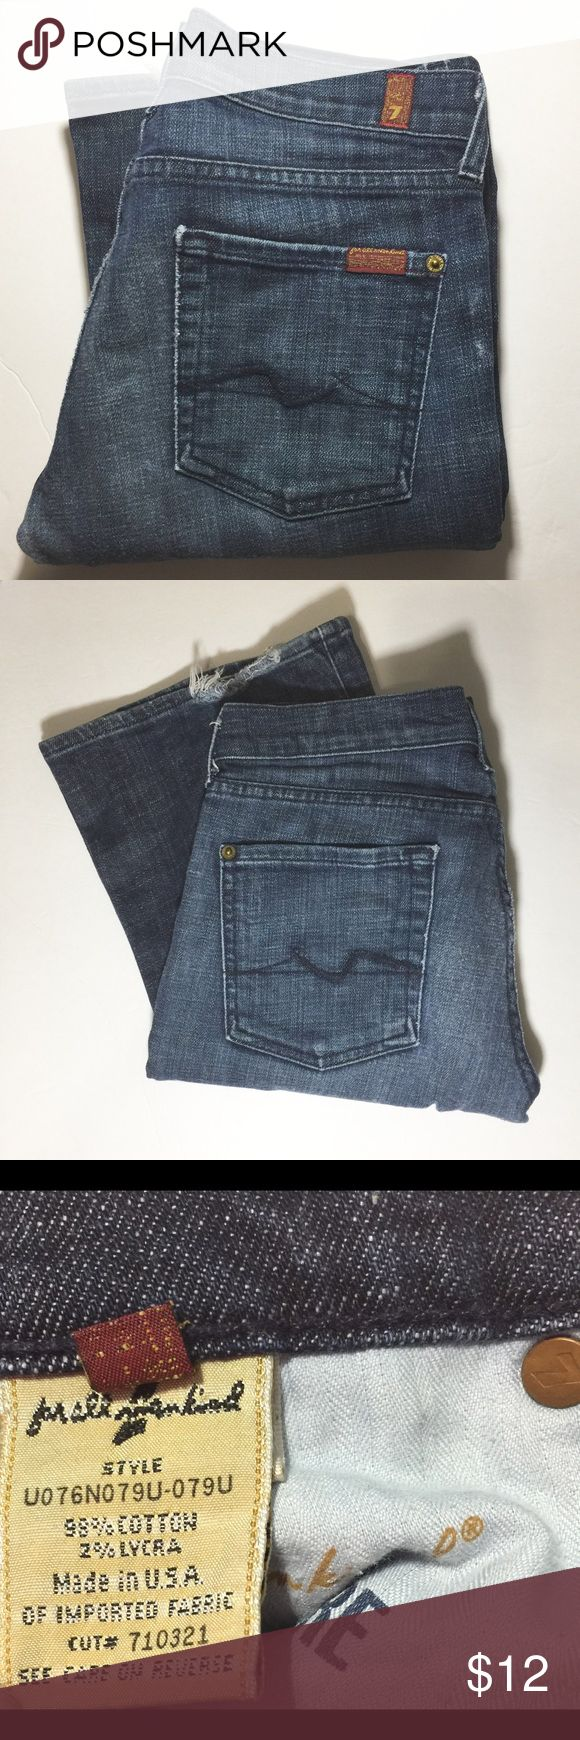 """7 FOR ALL MANKIND FLARE BROADWAY STRETCH JEANS Good used condition. Price reflects. Inseam is 33"""". Rise is 8"""". Wear on bottoms, see pic. 7 For All Mankind Jeans Flare & Wide Leg"""